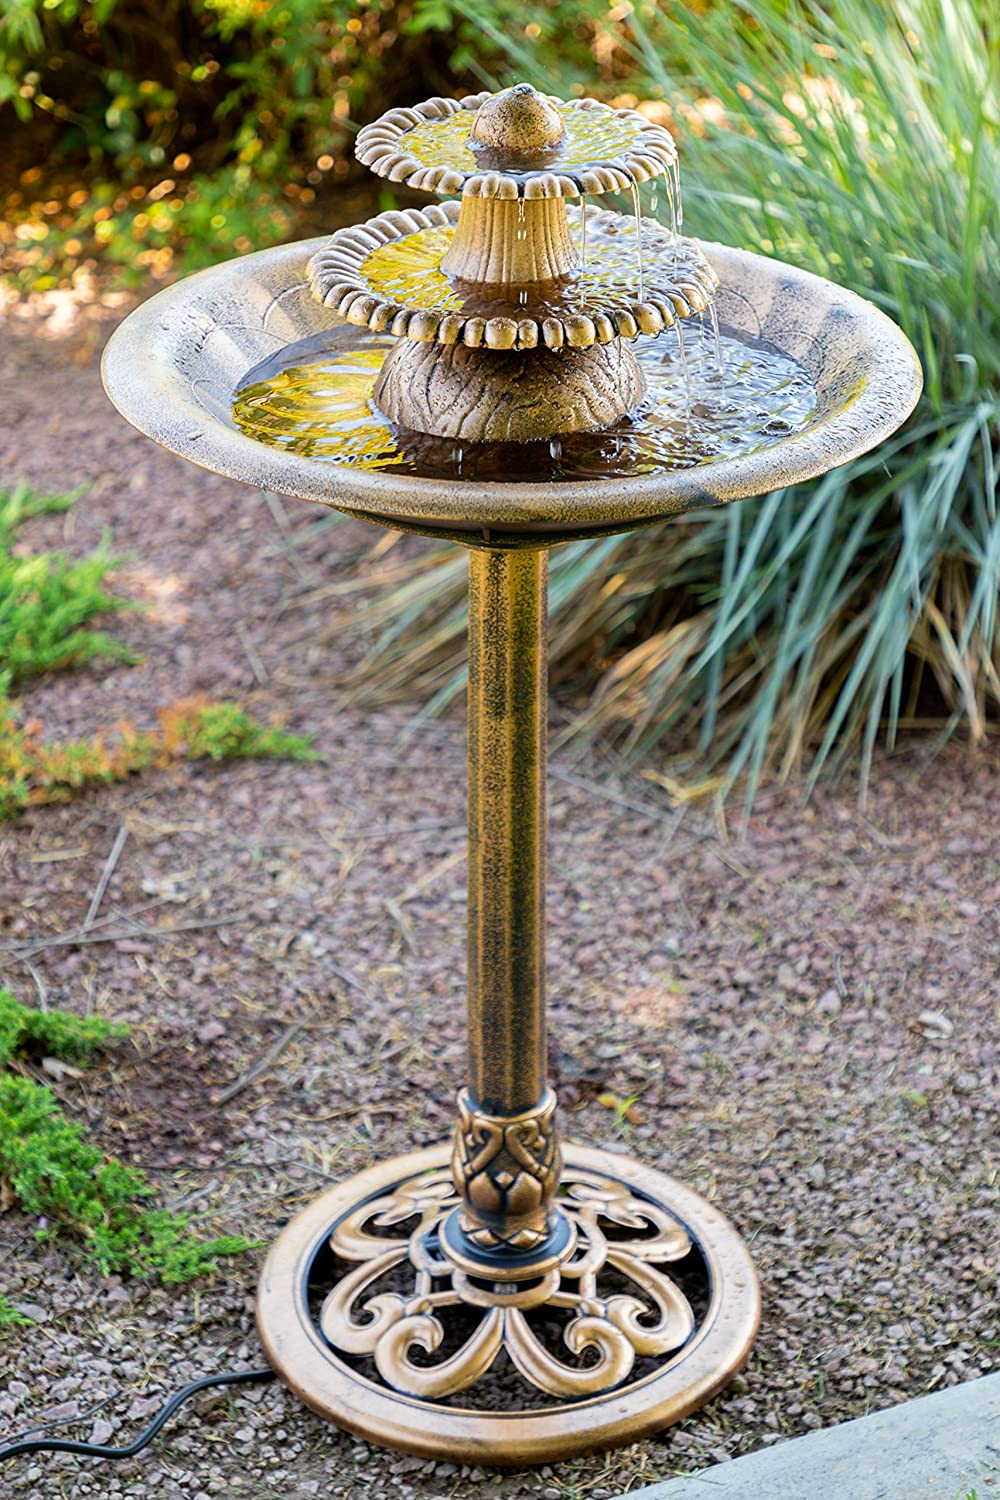 Alpine TEC106-BZ Three-Tiered Classic Pedestal Garden Water Fountain and Birdbath, Bronze Finish, 36 Inch Tall